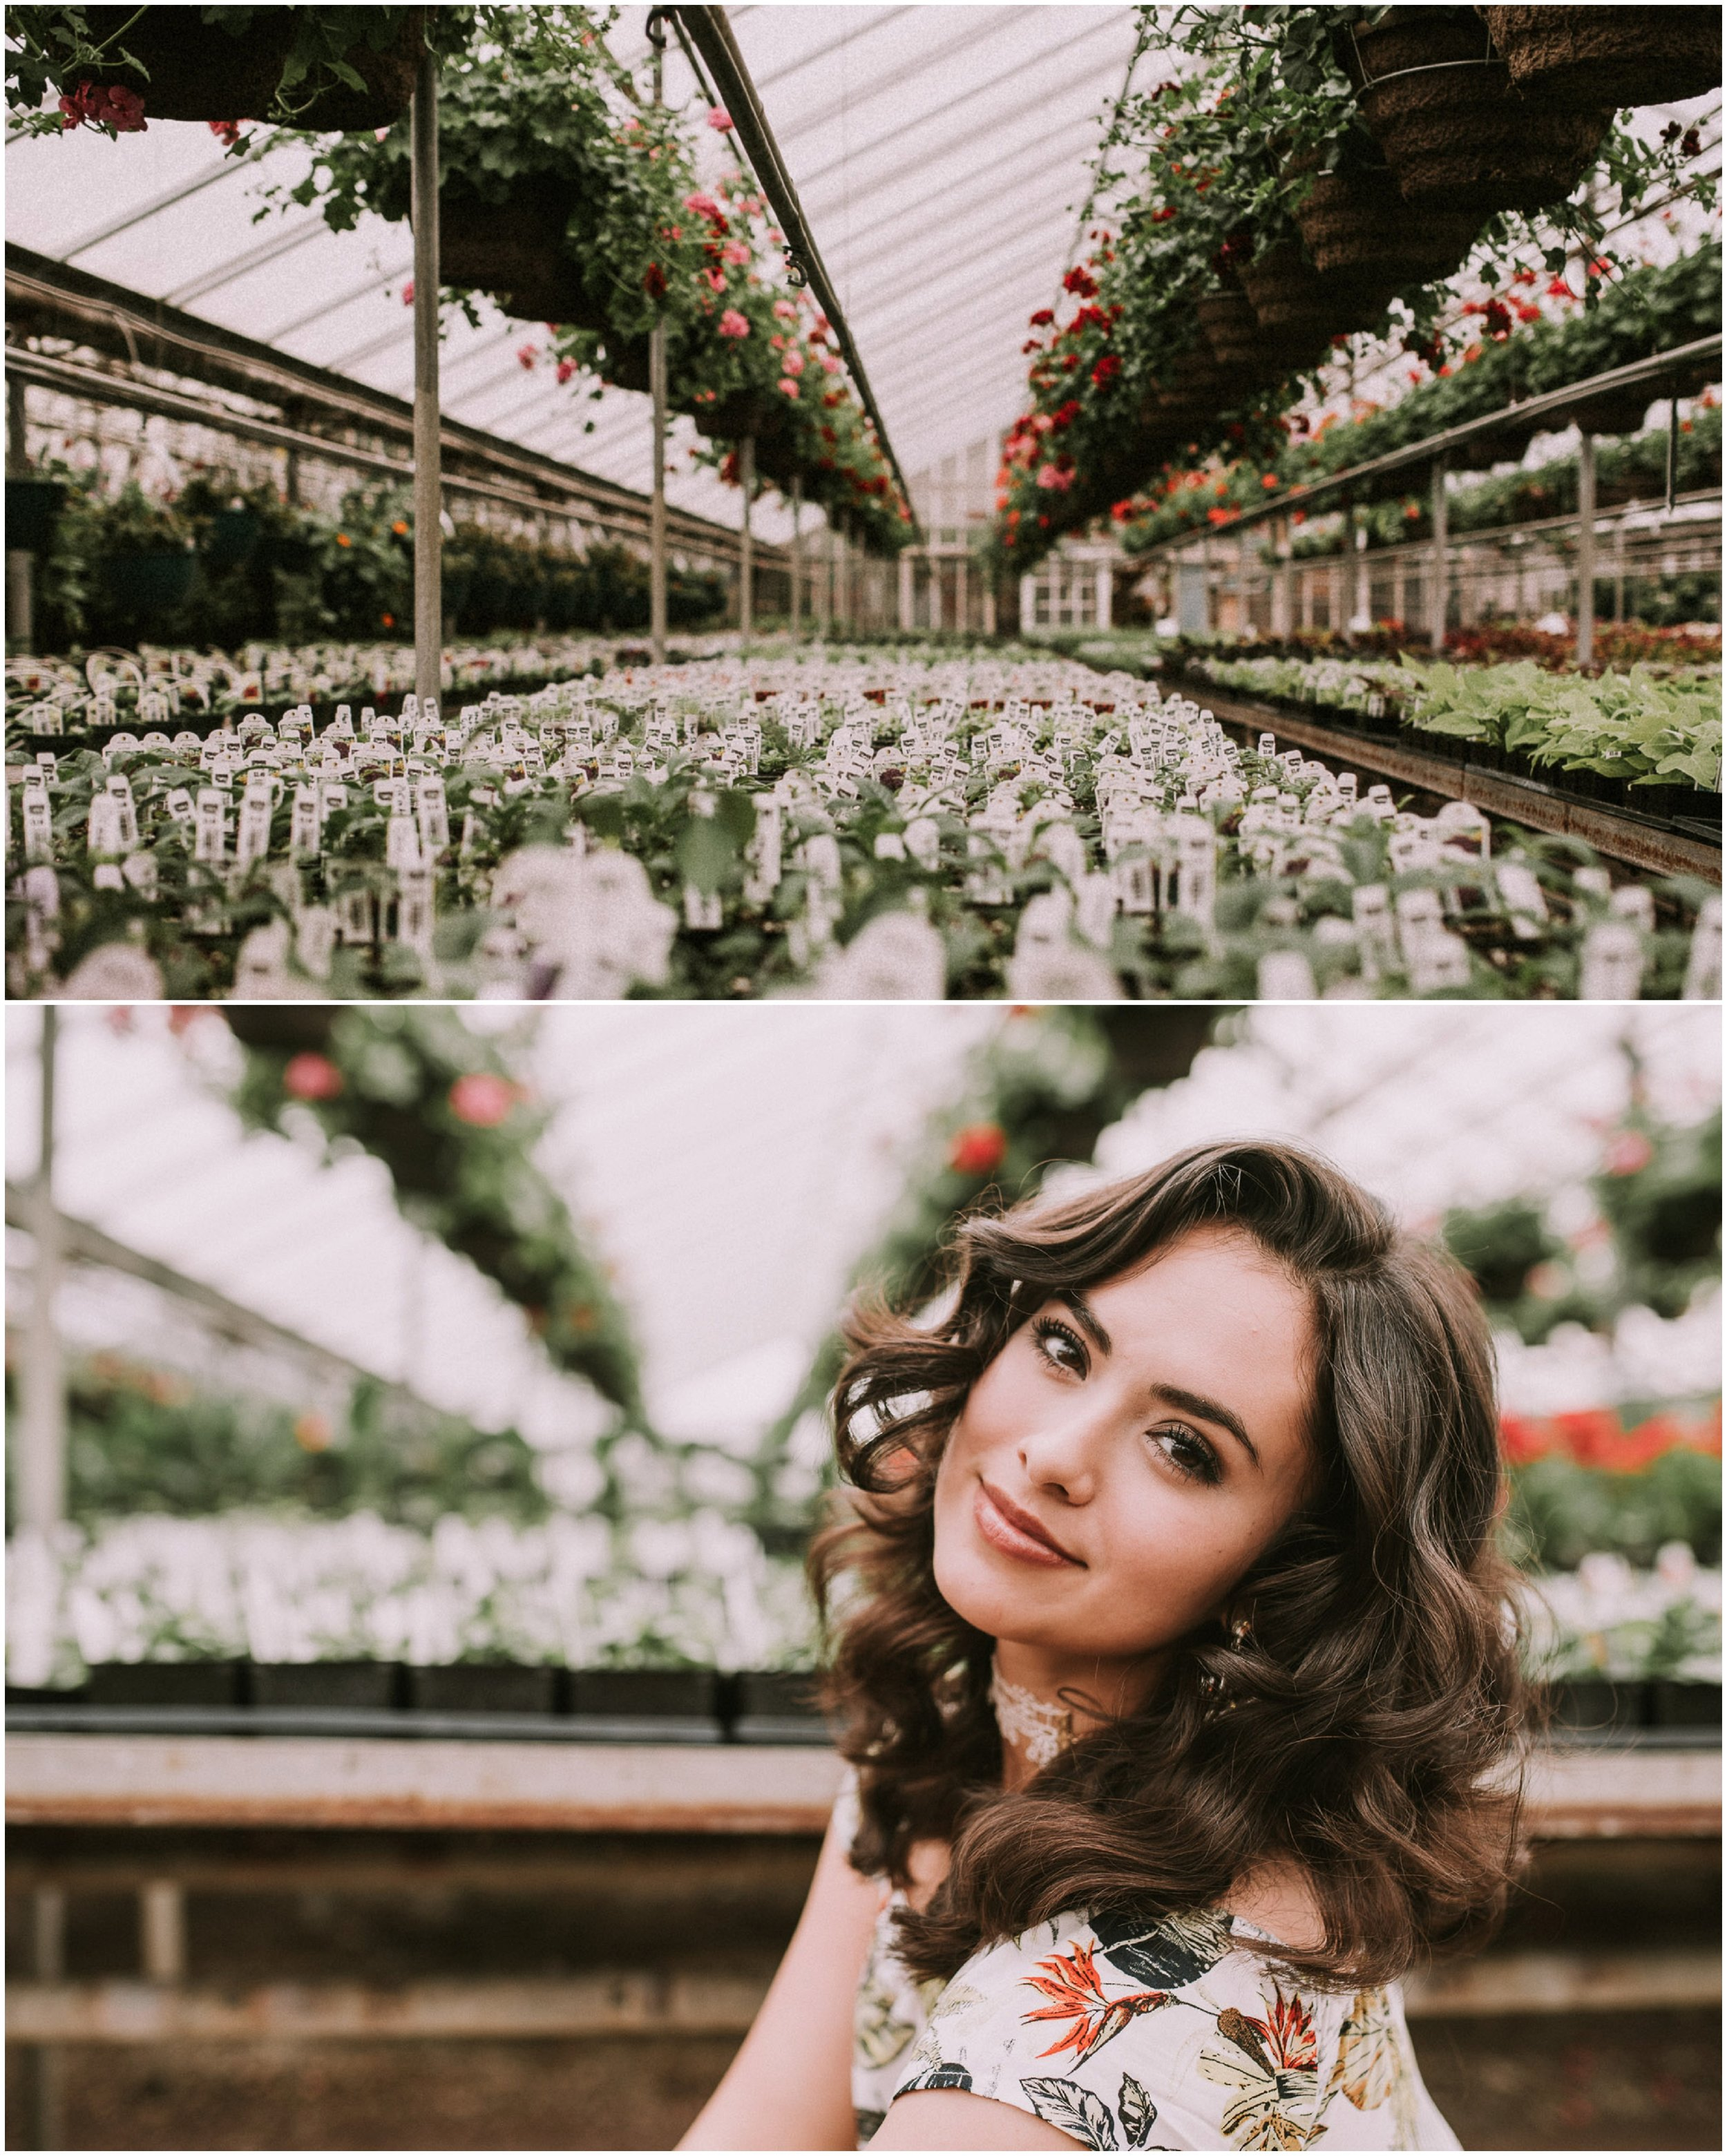 Boise senior photographer succulents Edwards Greenhouse Boise Idaho spring senior pictures